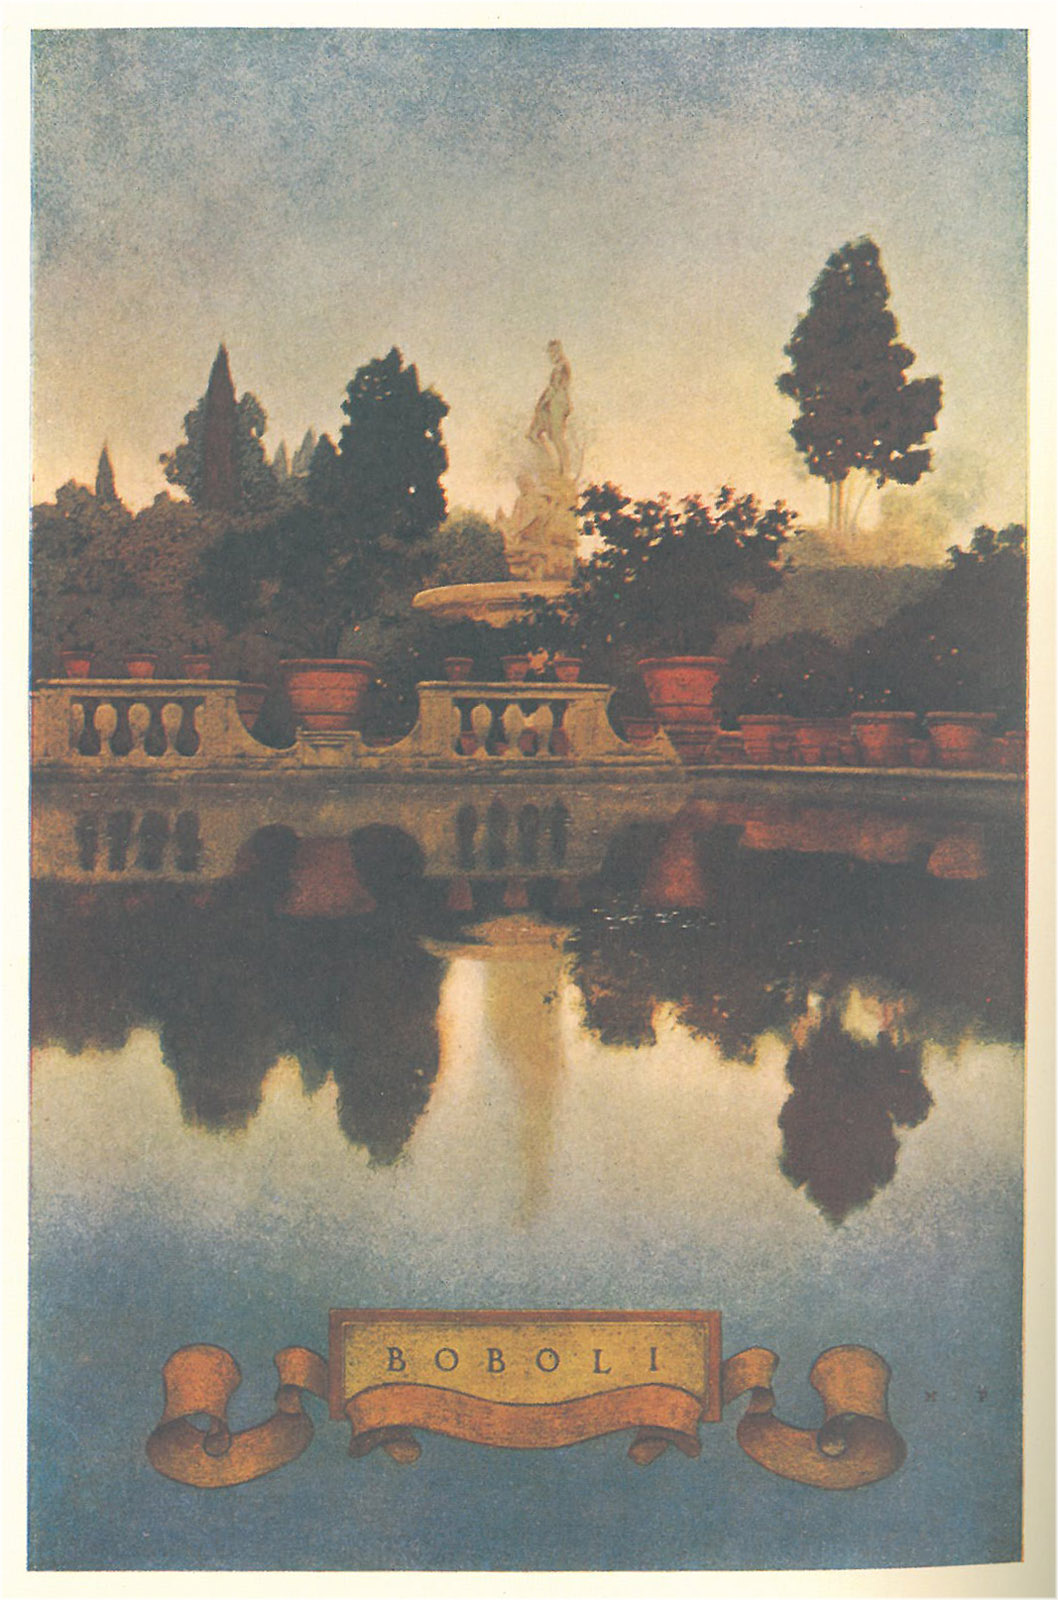 Maxfield Parrish's illustration of the Oceanus Fountain in the Boboli Gardens. This image taken from my own copy of Edith Wharton's ITALIAN VILLAS AND THEIR GARDENS